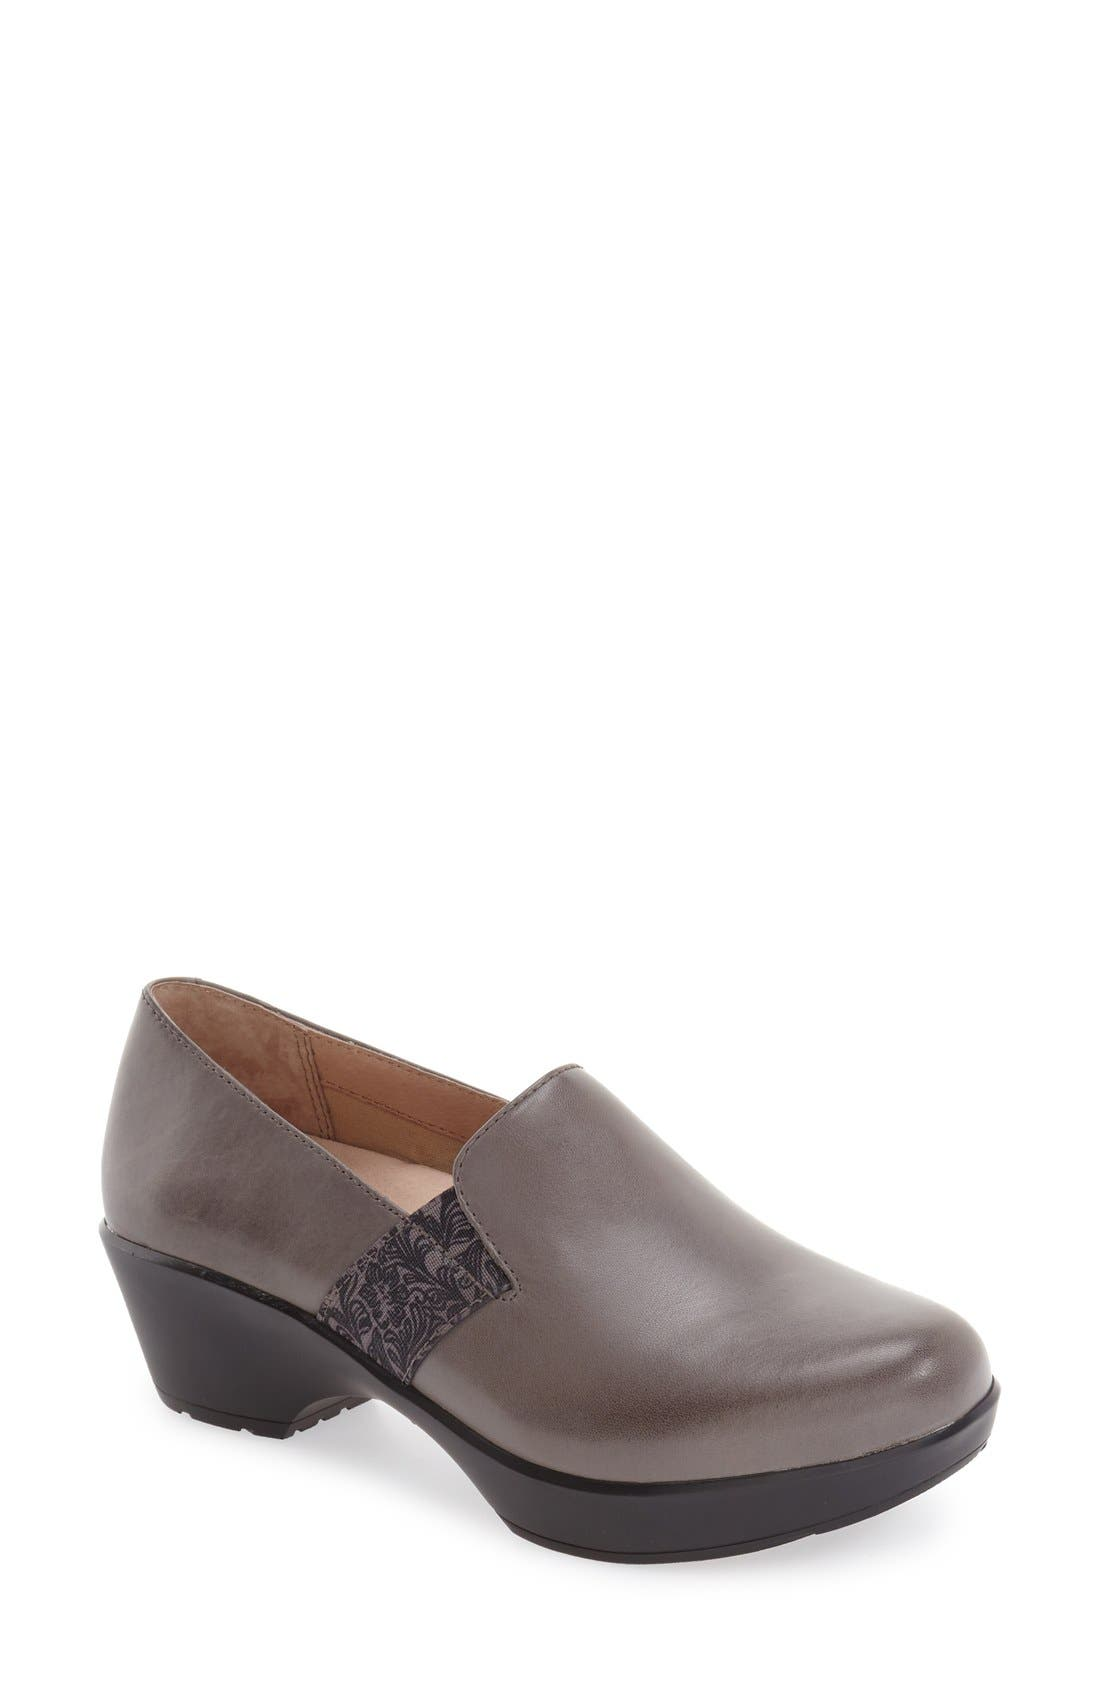 'Jessica' Platform Loafer,                         Main,                         color, Grey Nappa Leather